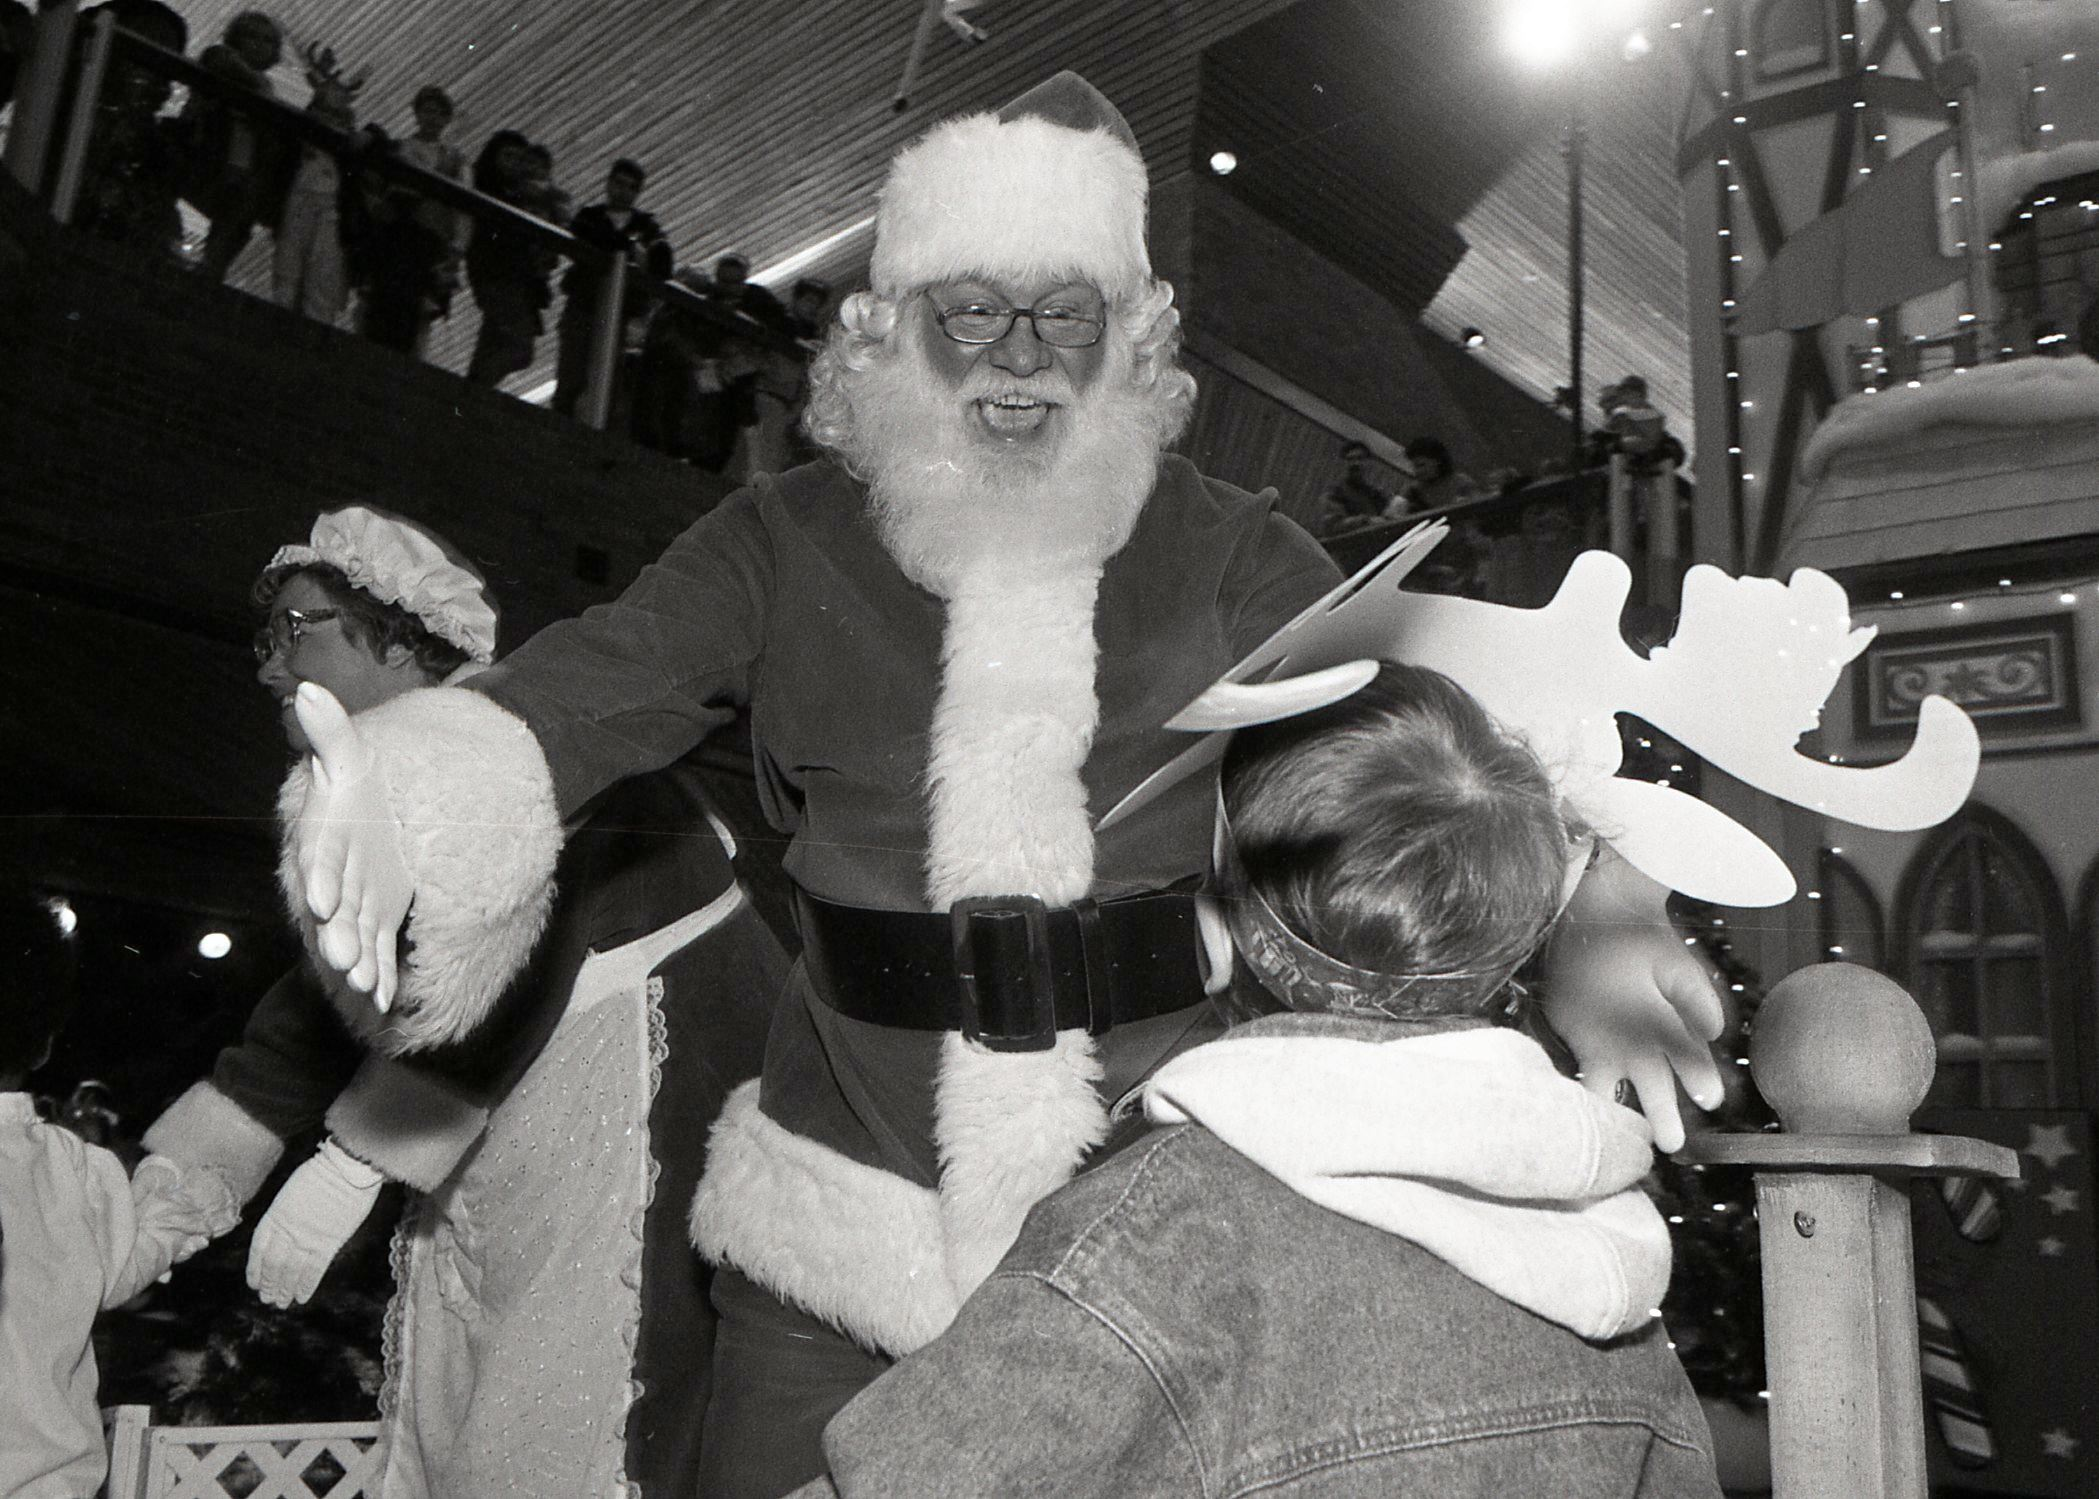 Santa at Coquitlam Centre, 1993 (JPG) Opens in new window